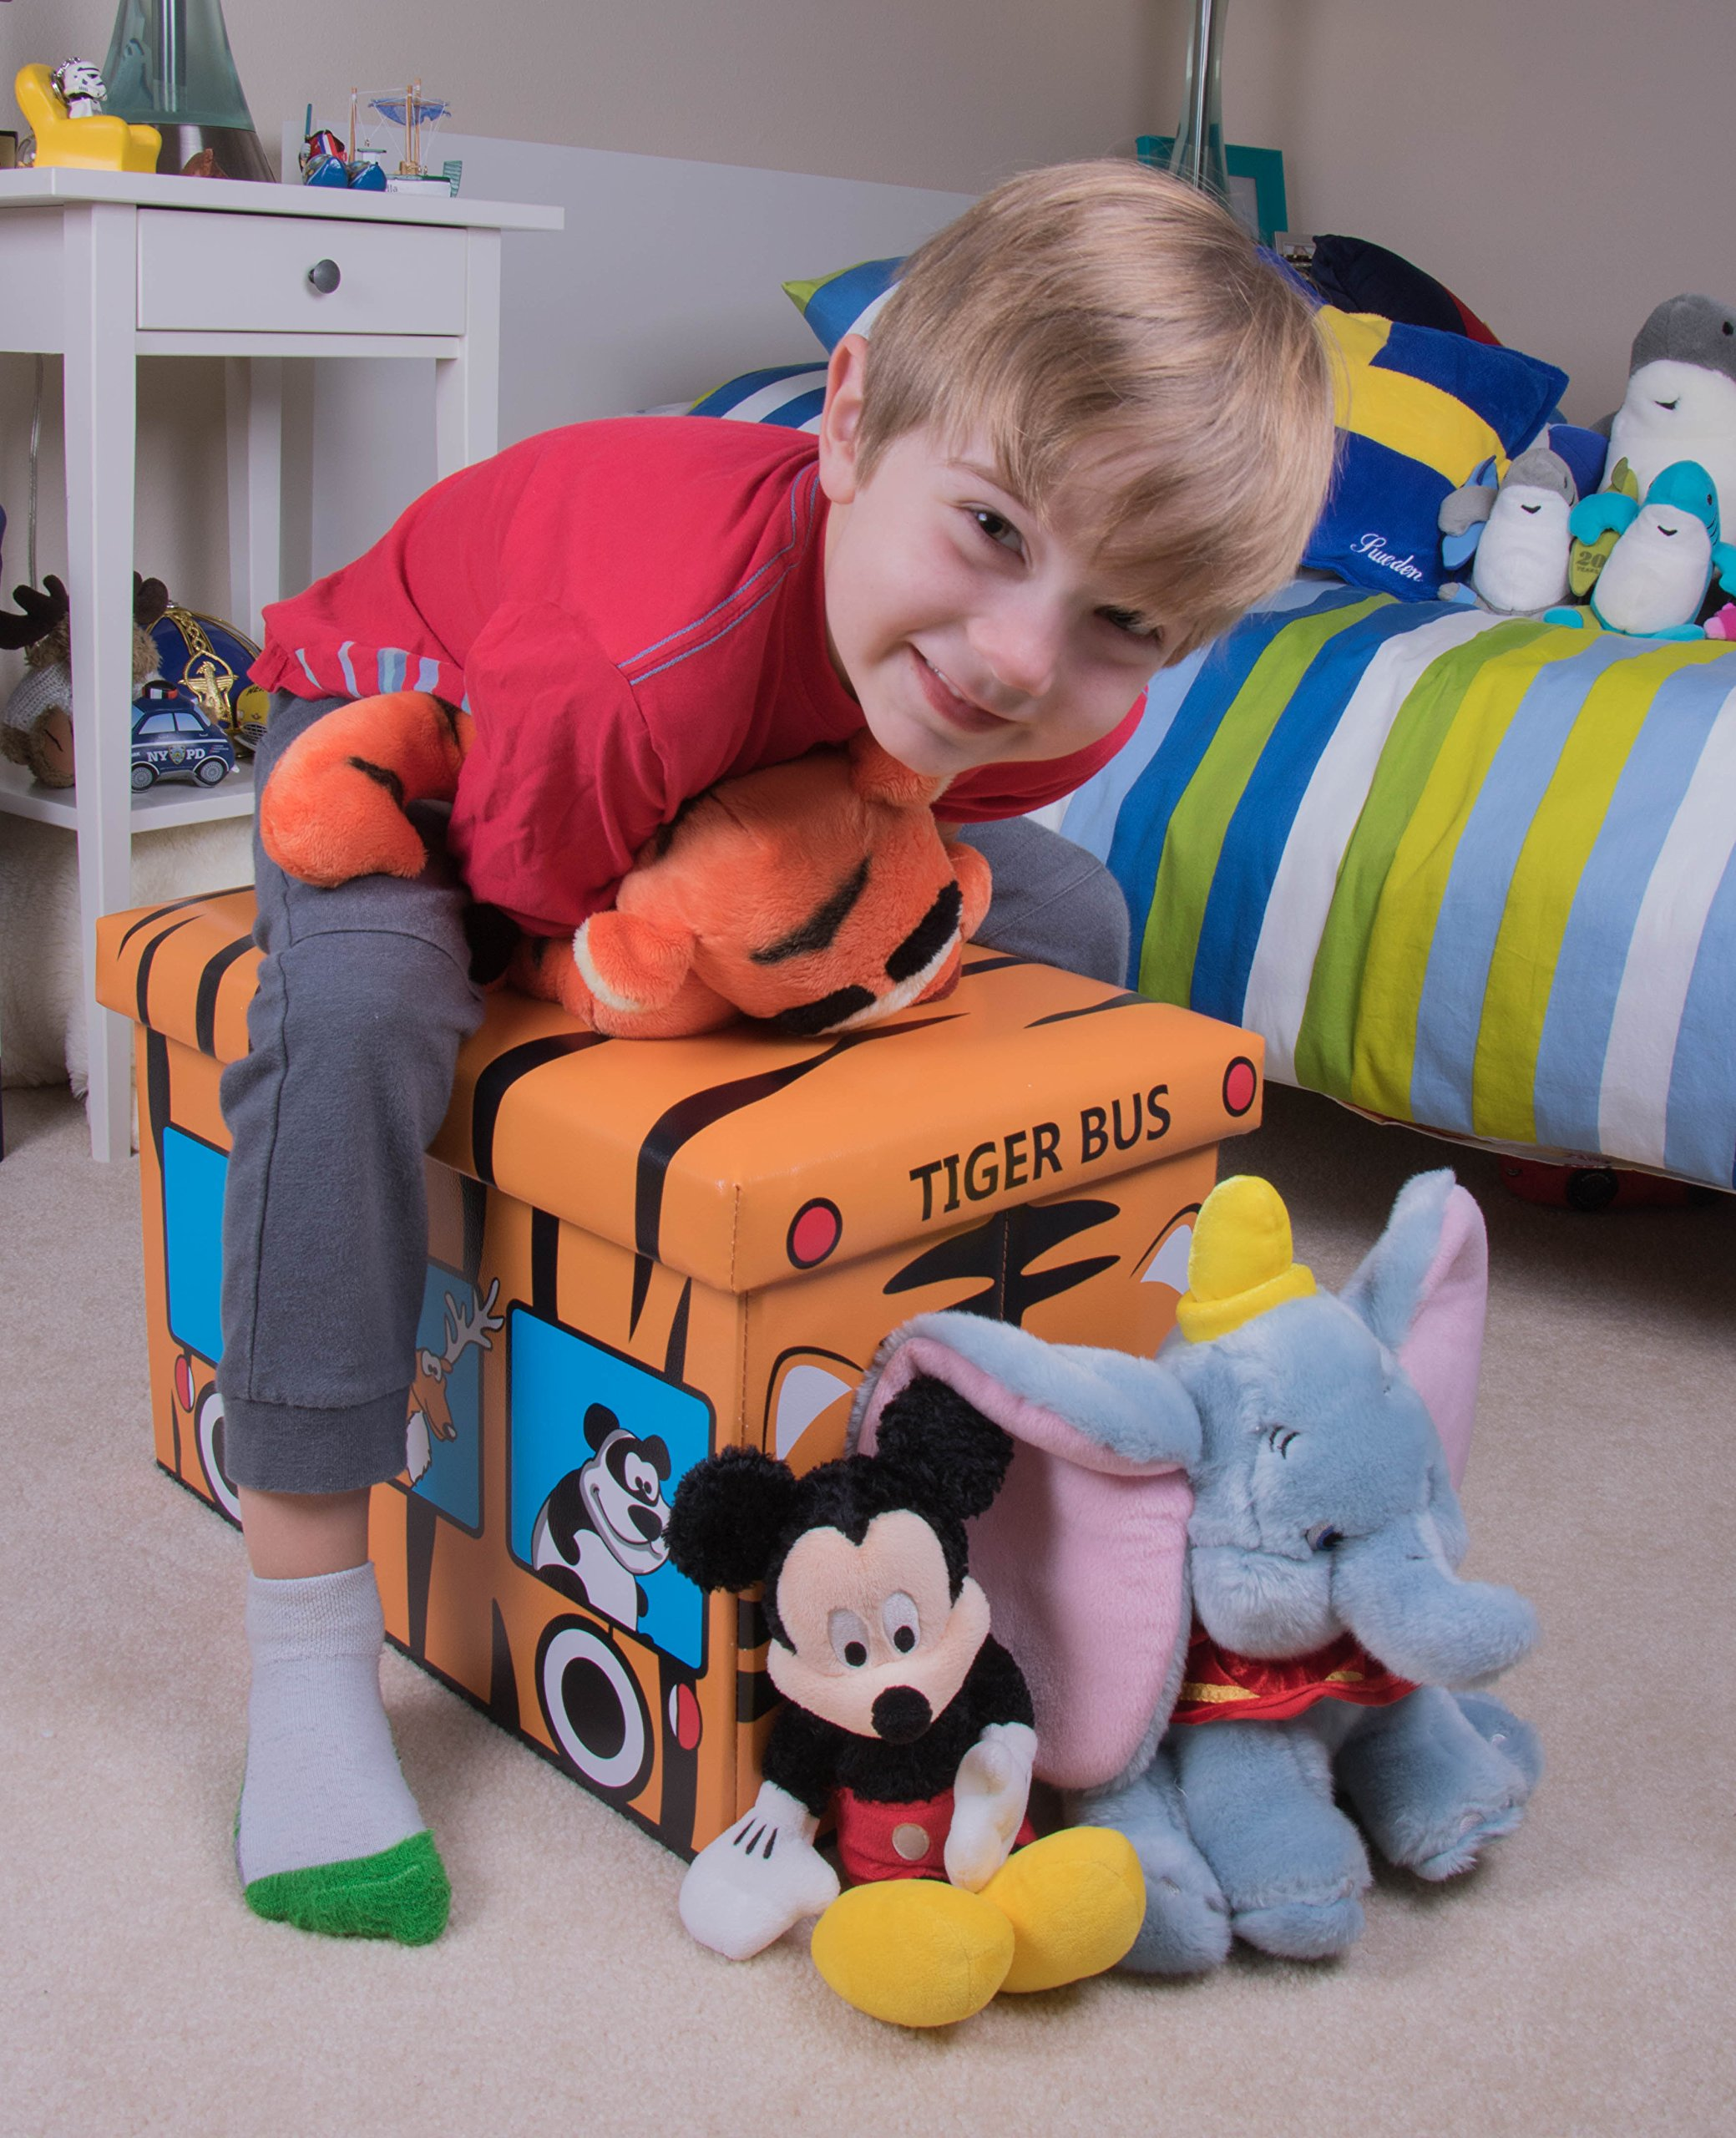 Safari Bus Collapsible Storage Organizer by Clever Creations | Storage Box Folding Storage Ottoman for Your Bedroom | Perfect Size Storage Chest for Books, Shoes & Games by Clever Creations (Image #6)